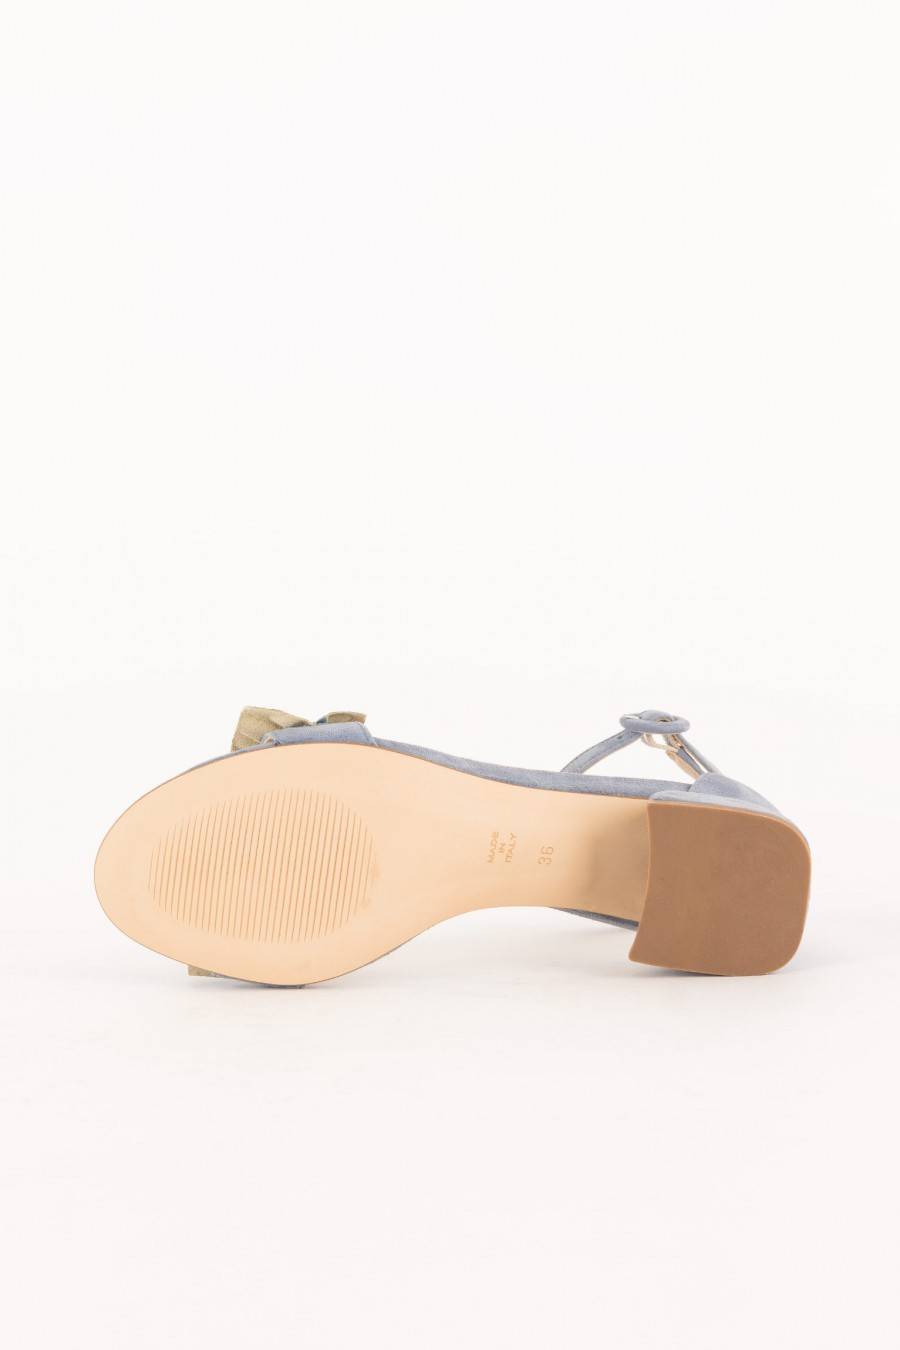 light blue sandal with low heel